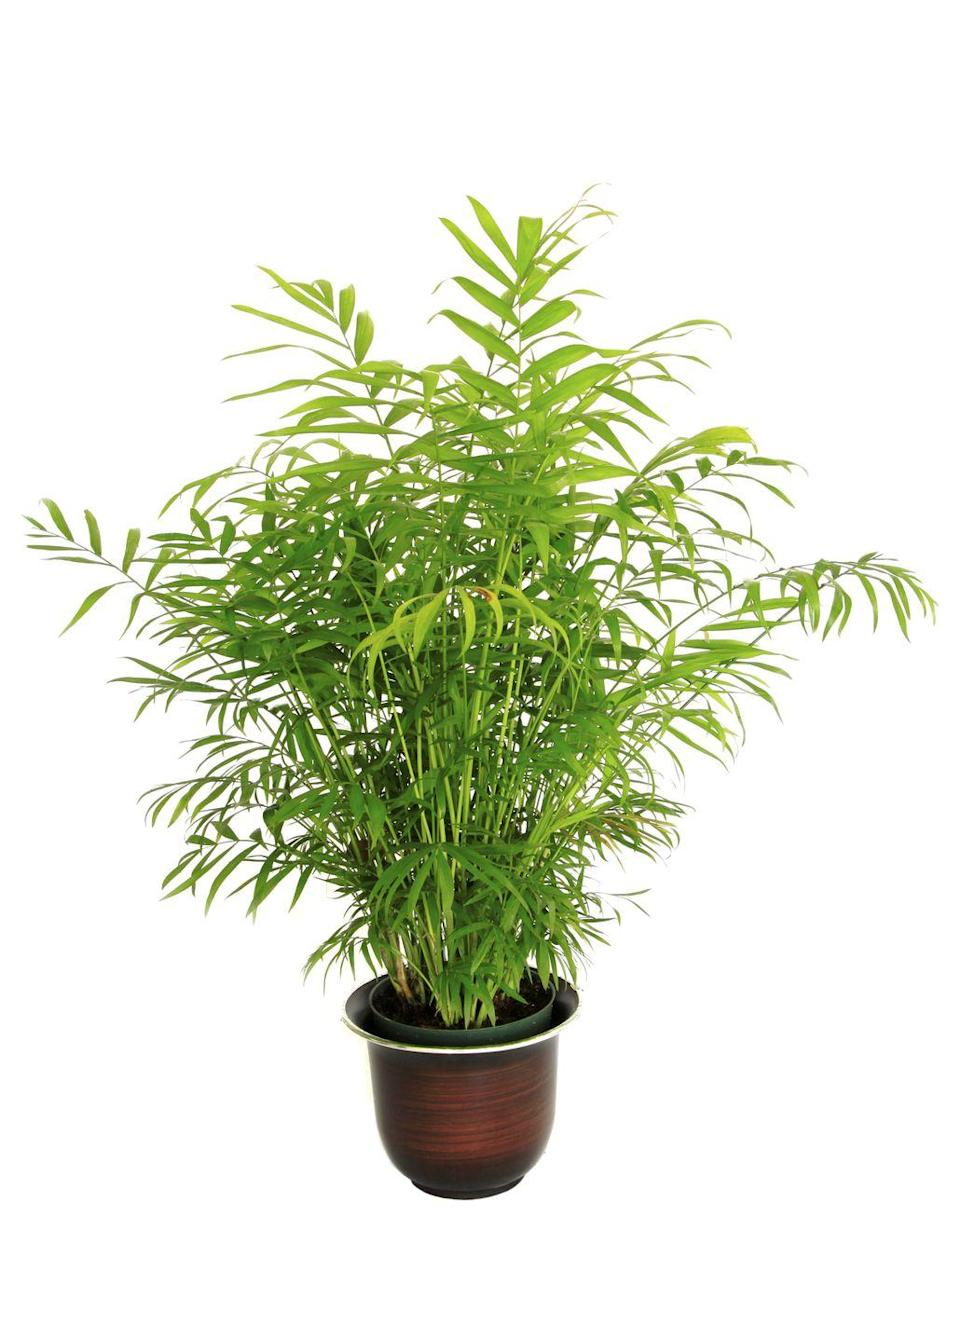 """<p>The bamboo palm doesn't need a lot of light, so this is a great choice for apartment dwellers or for adding a breath of fresh air to your office. Bonus: They're safe for pets.</p><p><a class=""""link rapid-noclick-resp"""" href=""""https://www.amazon.com/Costa-Farms-rivularis-Gray-Taupe-Decorator/dp/B07BC5RTD4/?tag=syn-yahoo-20&ascsubtag=%5Bartid%7C2141.g.28325586%5Bsrc%7Cyahoo-us"""" rel=""""nofollow noopener"""" target=""""_blank"""" data-ylk=""""slk:SHOP BAMBOO PALMS"""">SHOP BAMBOO PALMS</a></p>"""